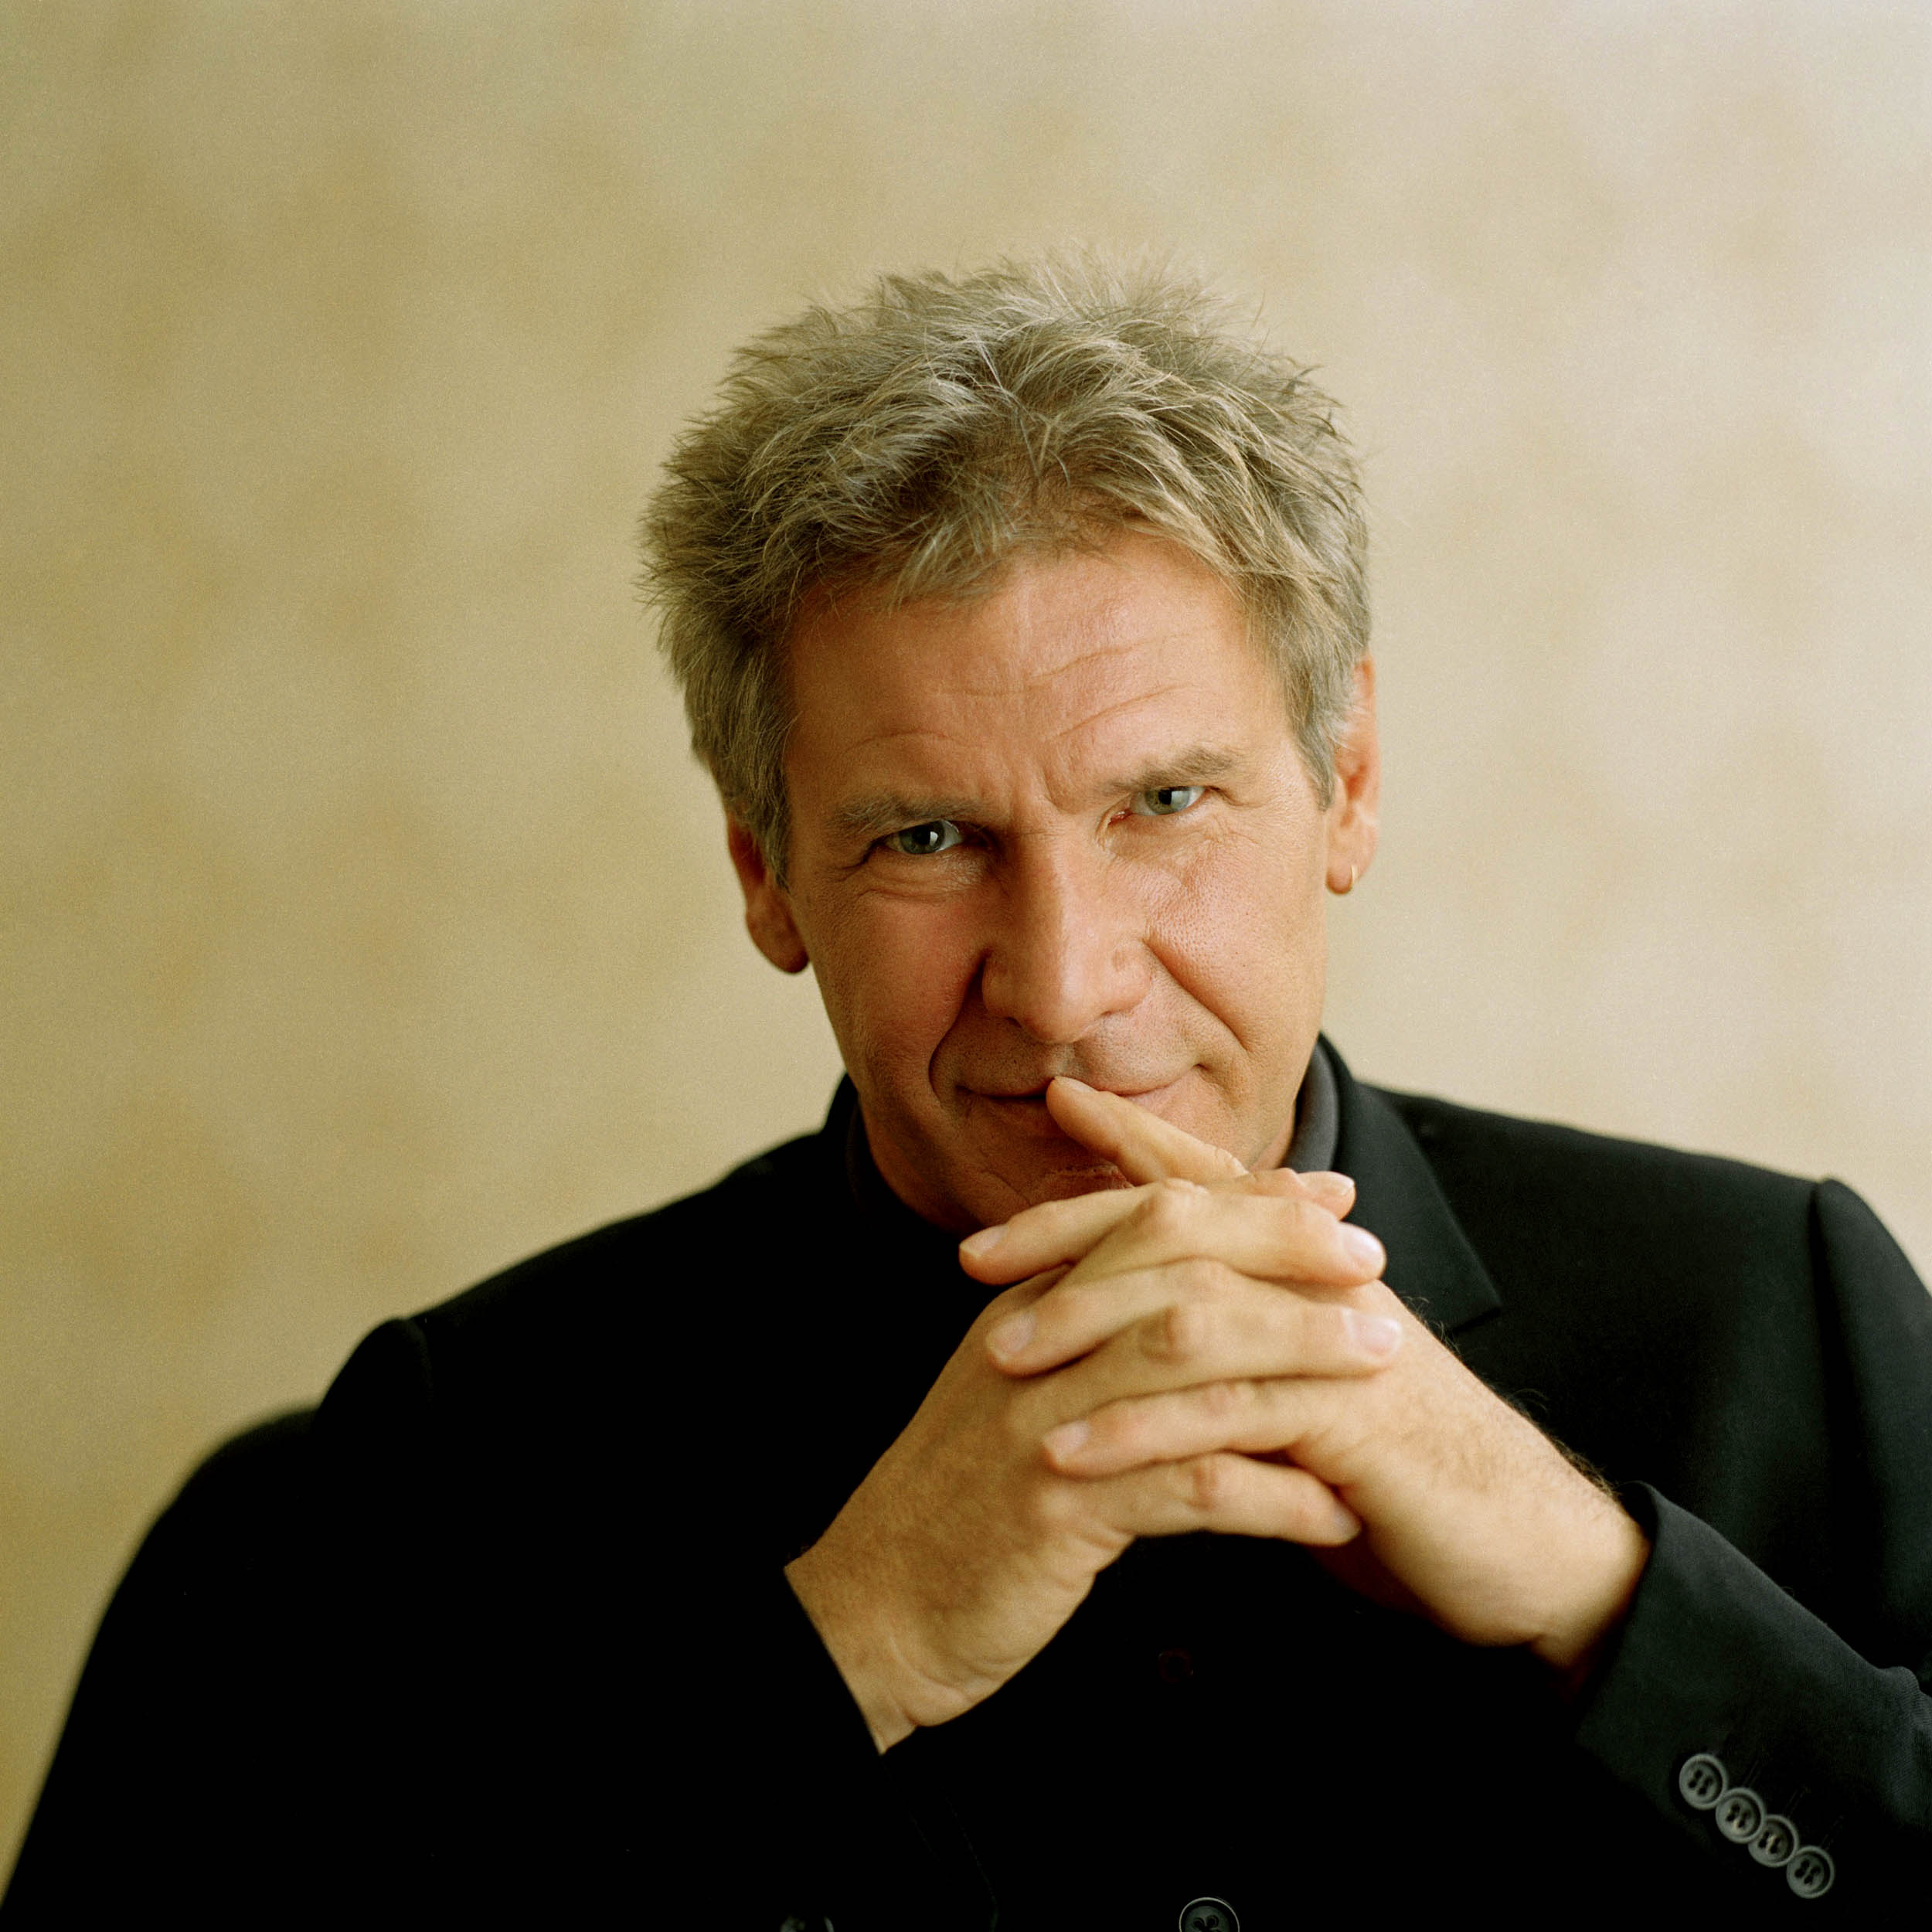 2500x2500 - Harrison Ford Wallpapers 5